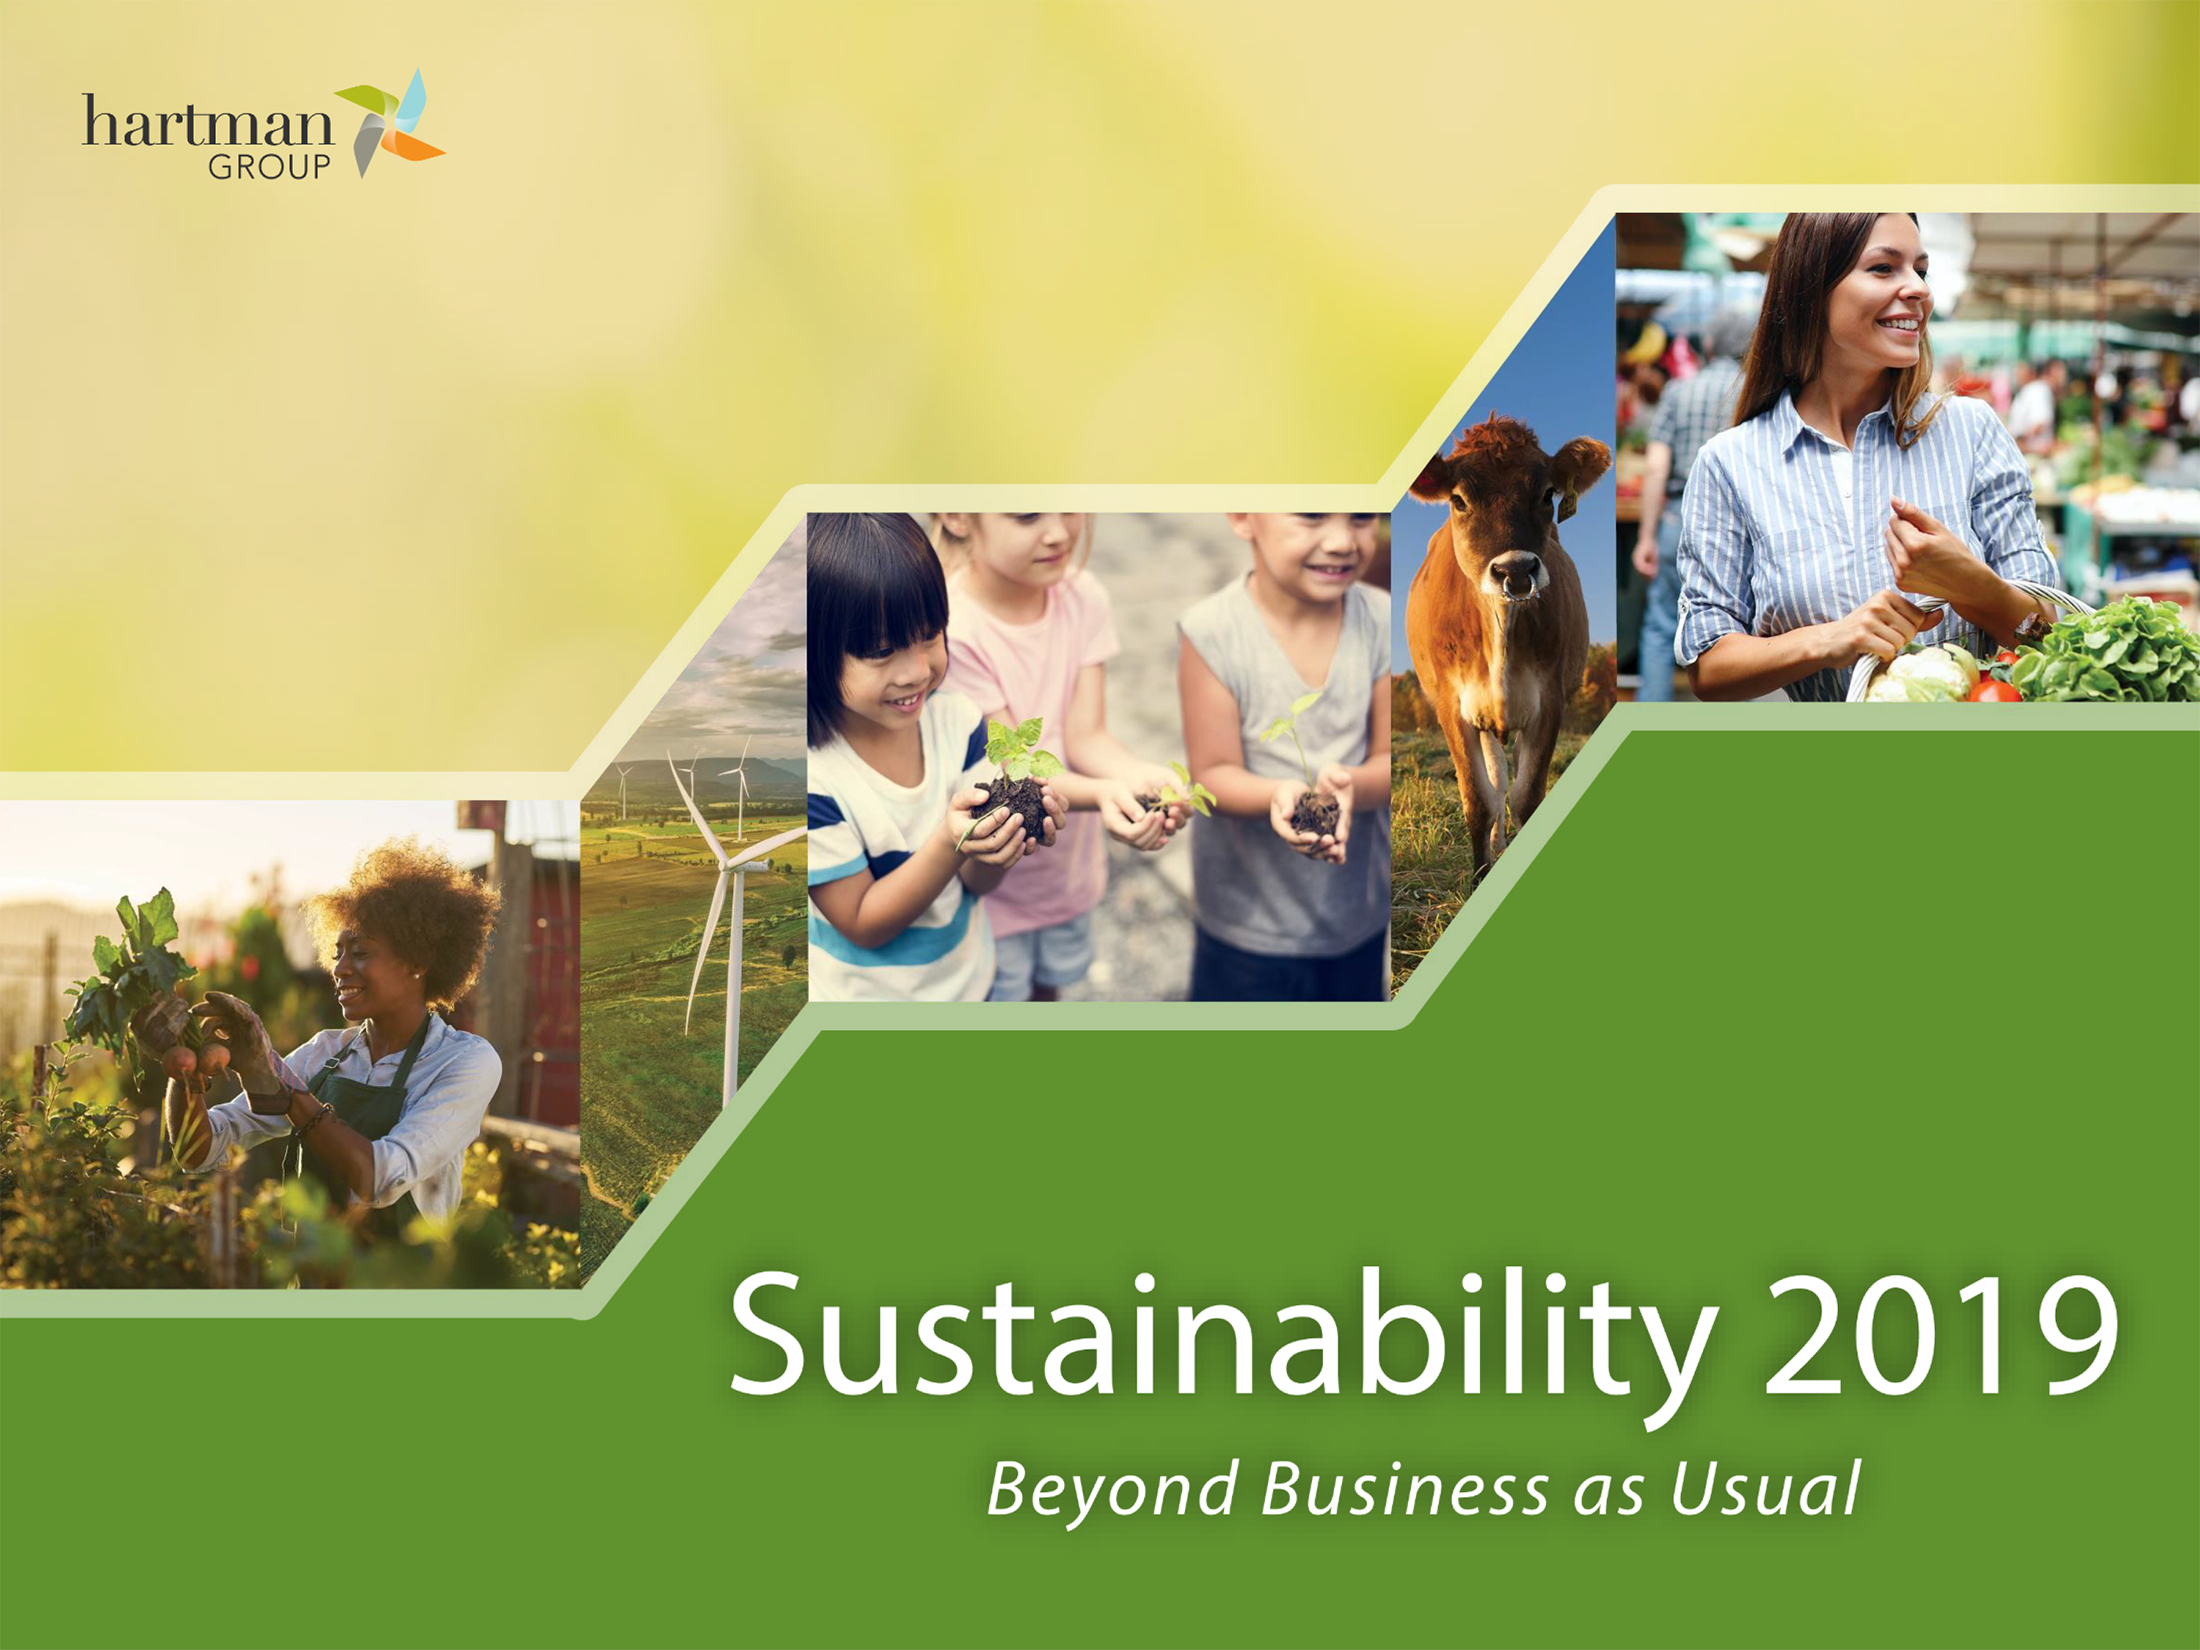 Sustainability 2019: Beyond Business as Usual